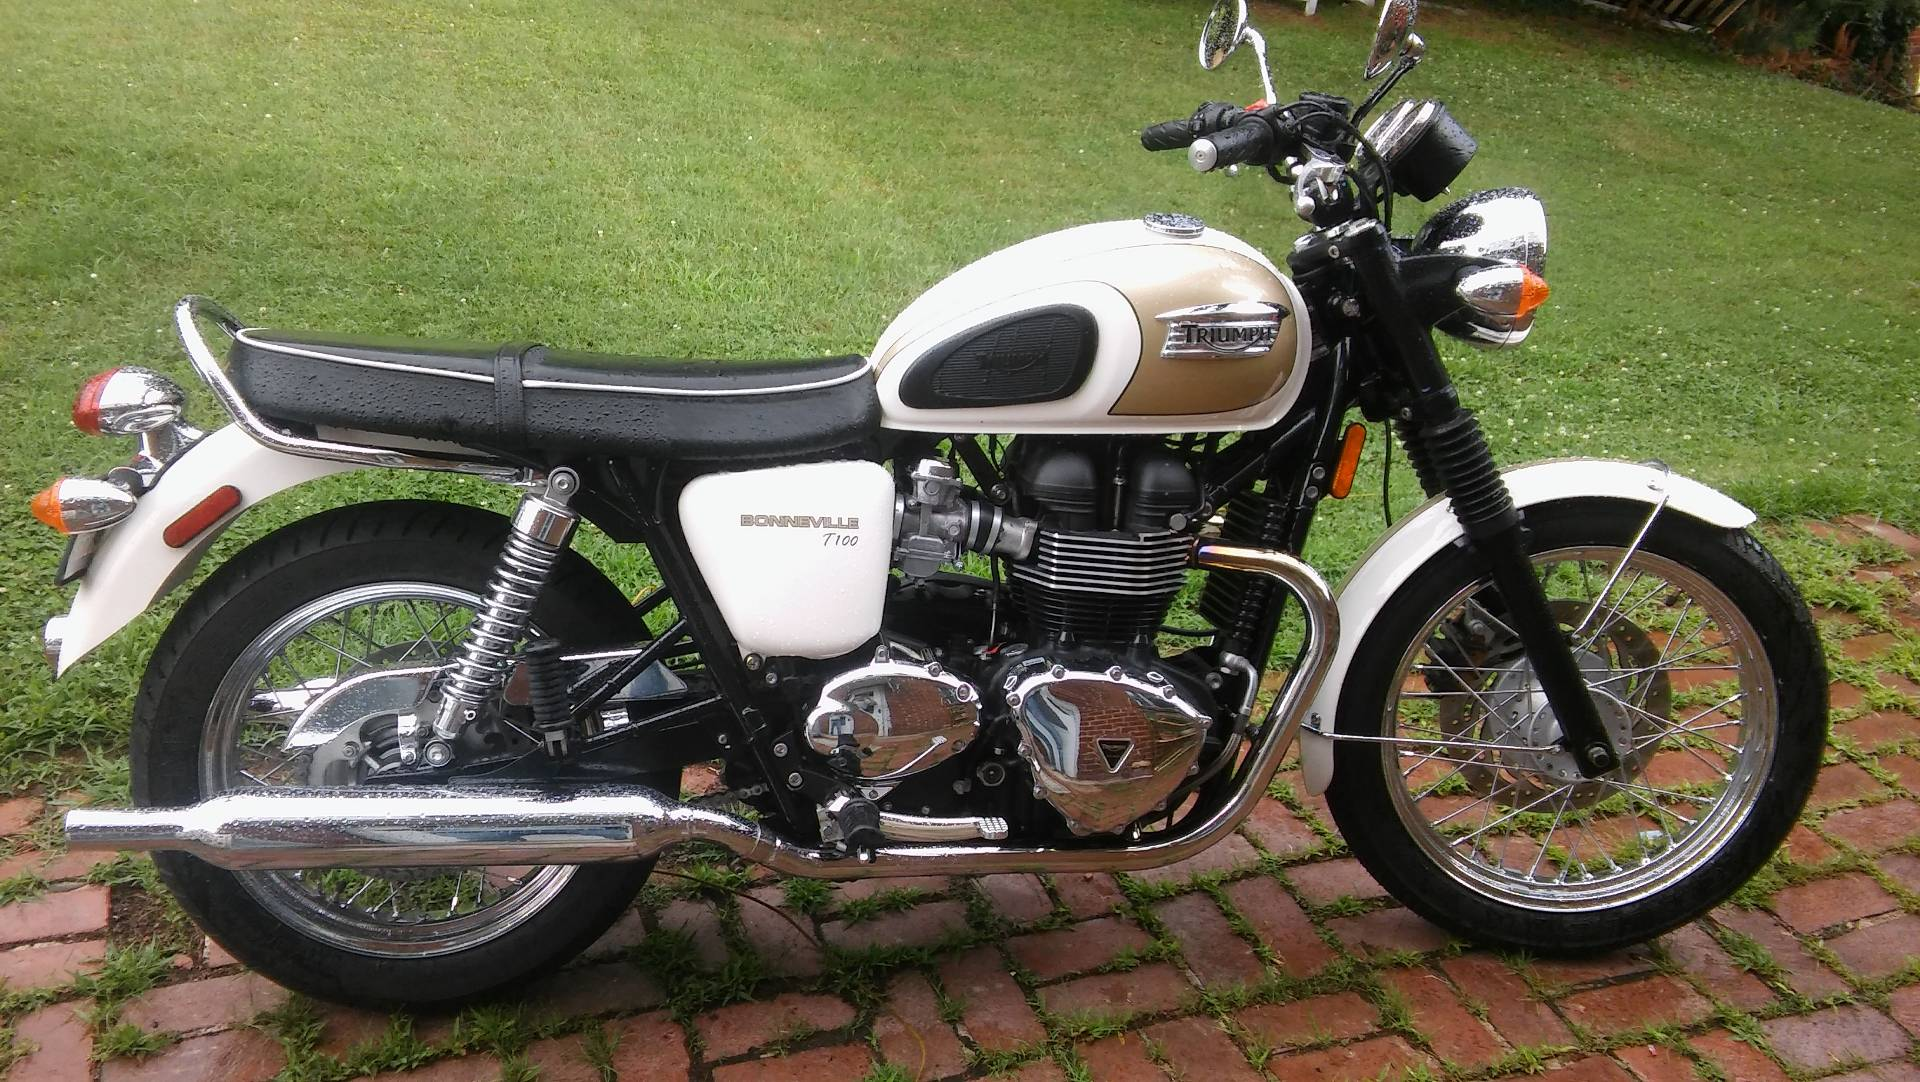 2016 Triumph Bonneville T100 in Ashland, Kentucky